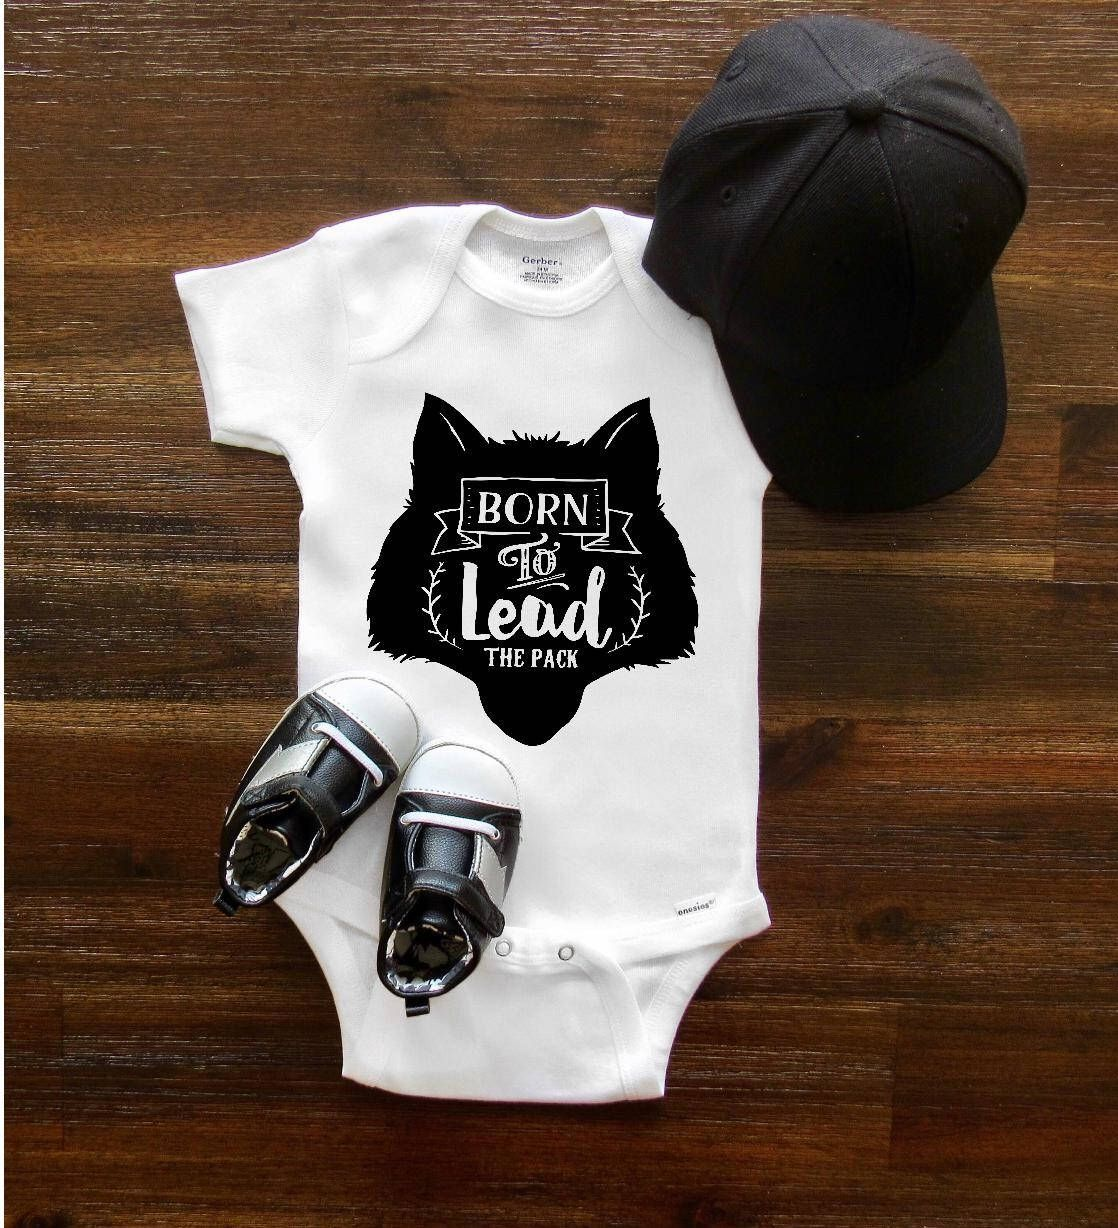 9d92999e4bb4 Wolf Onesie®, Baby Onesie®, Pregnancy announcement Onesie®, Born to lead,  Baby shower gift, Baby girl Baby boy, Newborn Onesie® ...